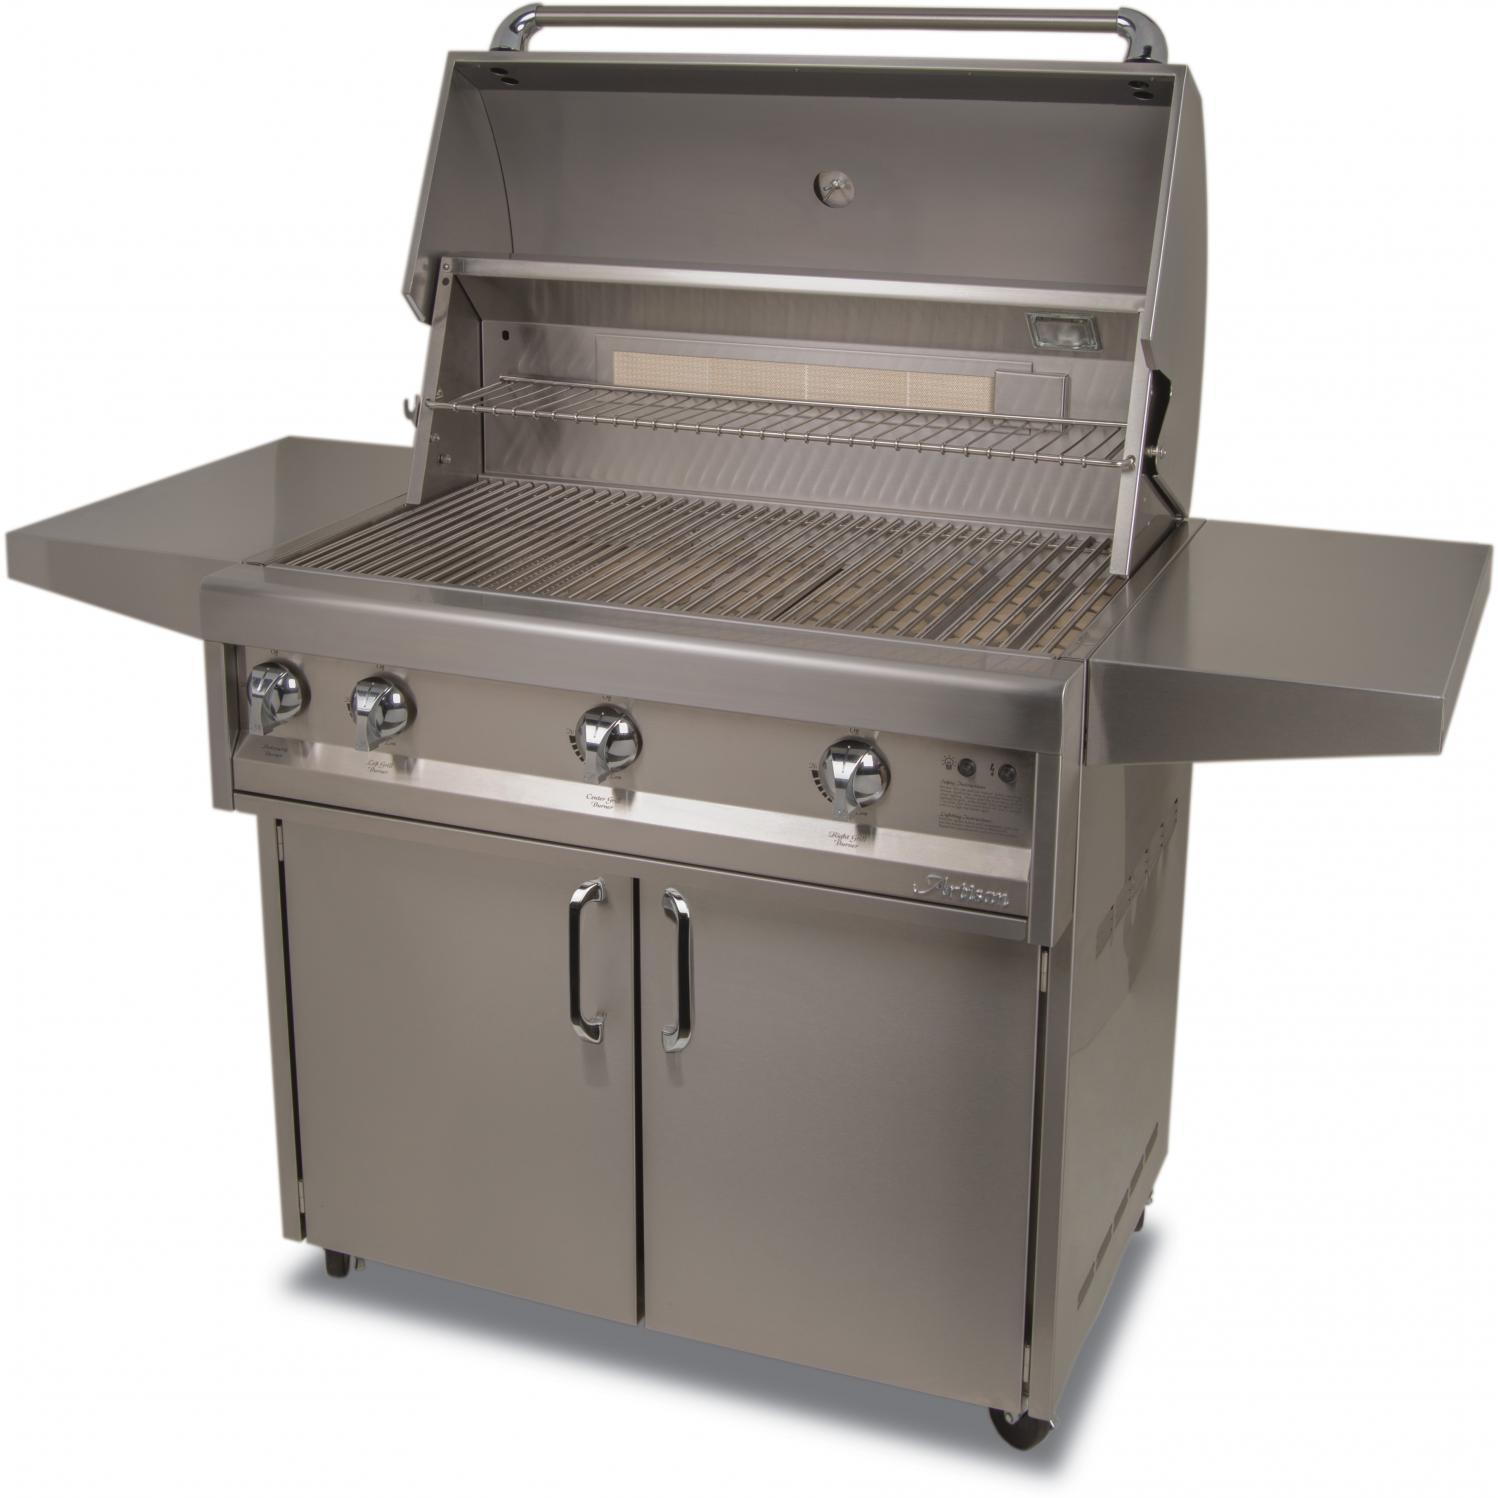 Artisan Classic By Alfresco 36-Inch Propane Gas Grill On Cart With Rotisserie 2872708